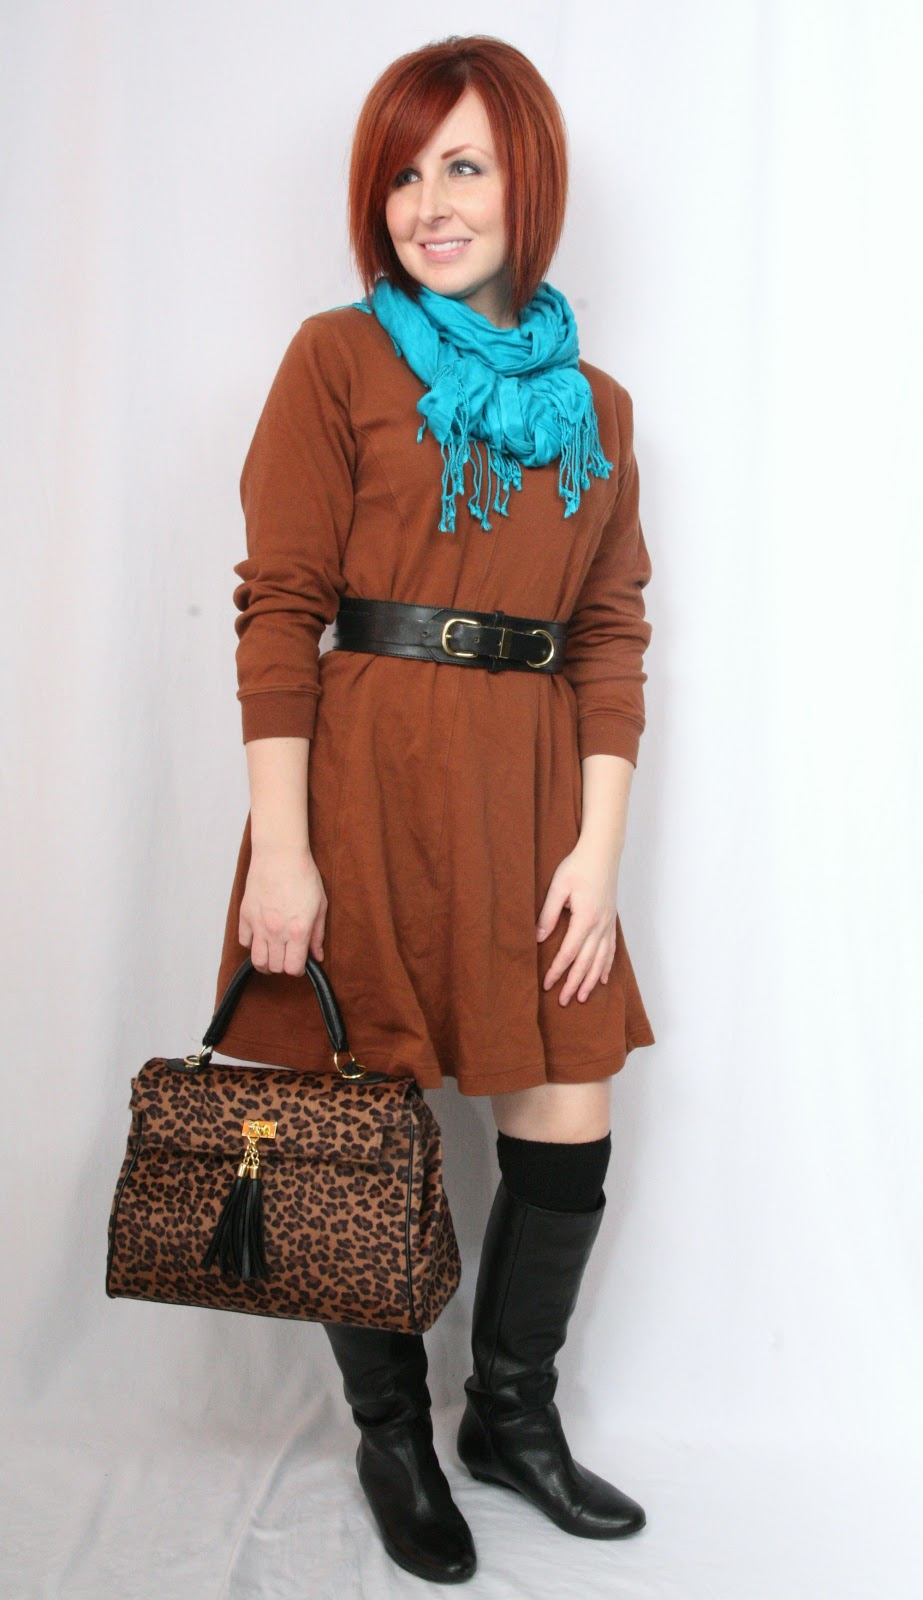 Thrift And Shout: Cute Outfit Of The Day: Gingerbread Woman